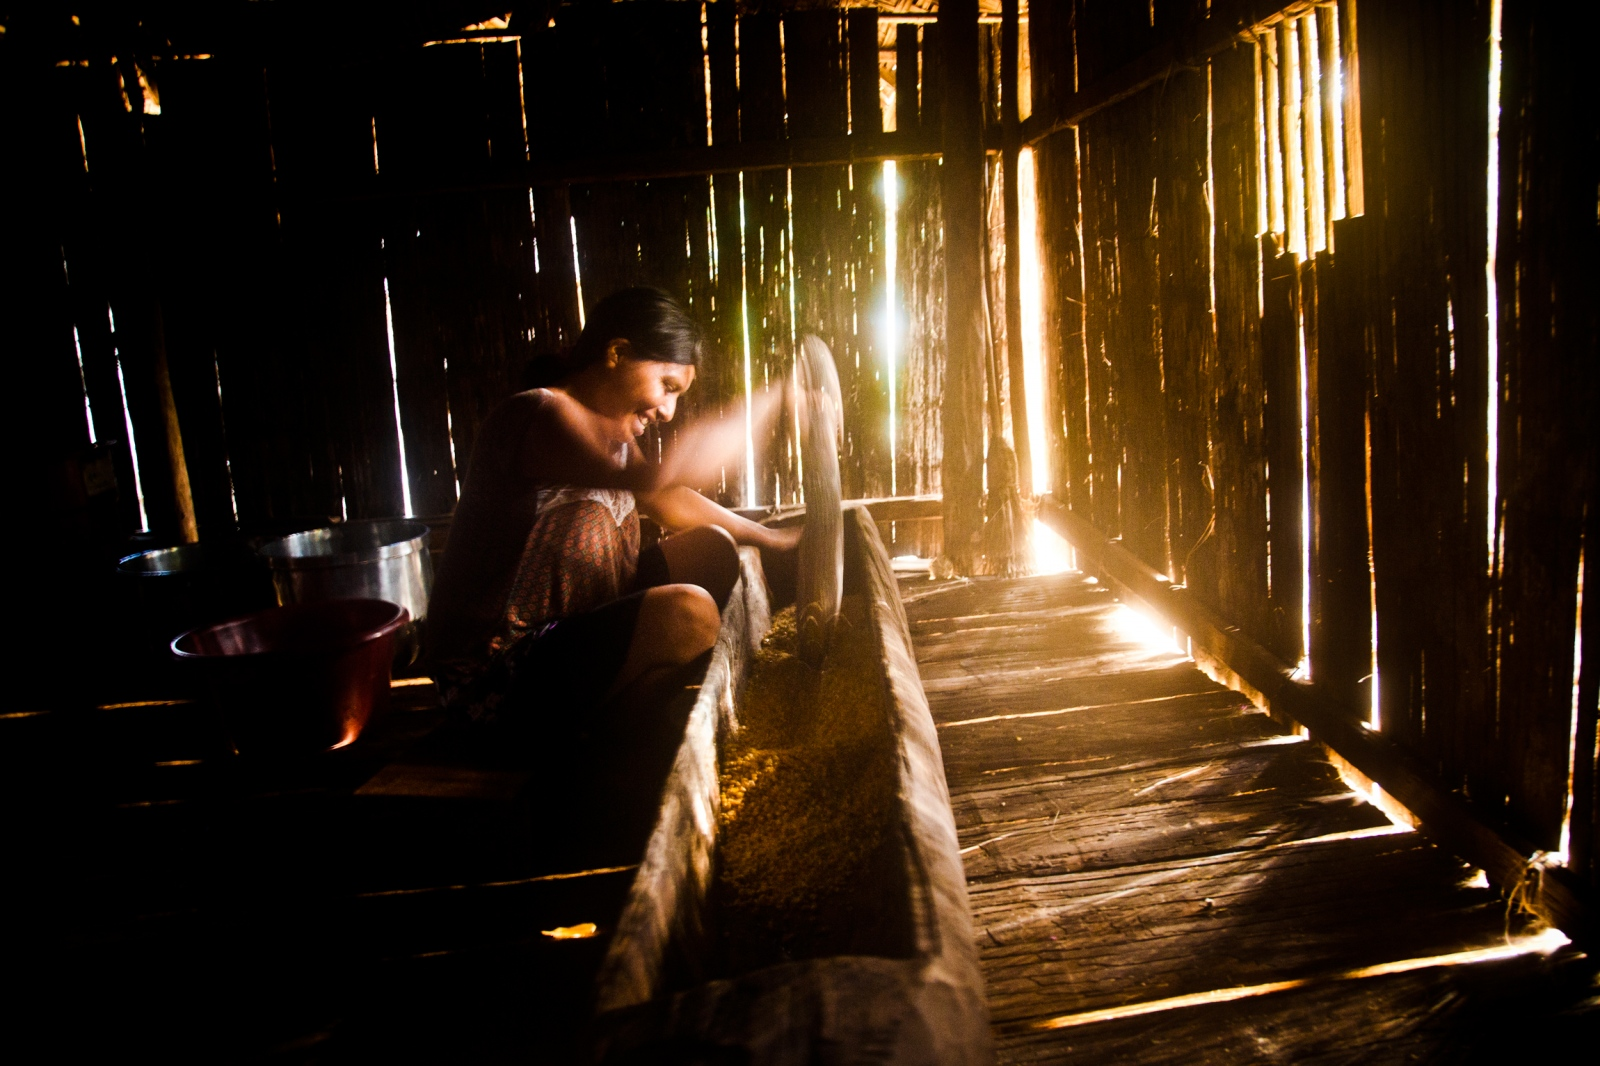 A Matsés woman is seen making a traditional drink that takes around 8 hours to make.